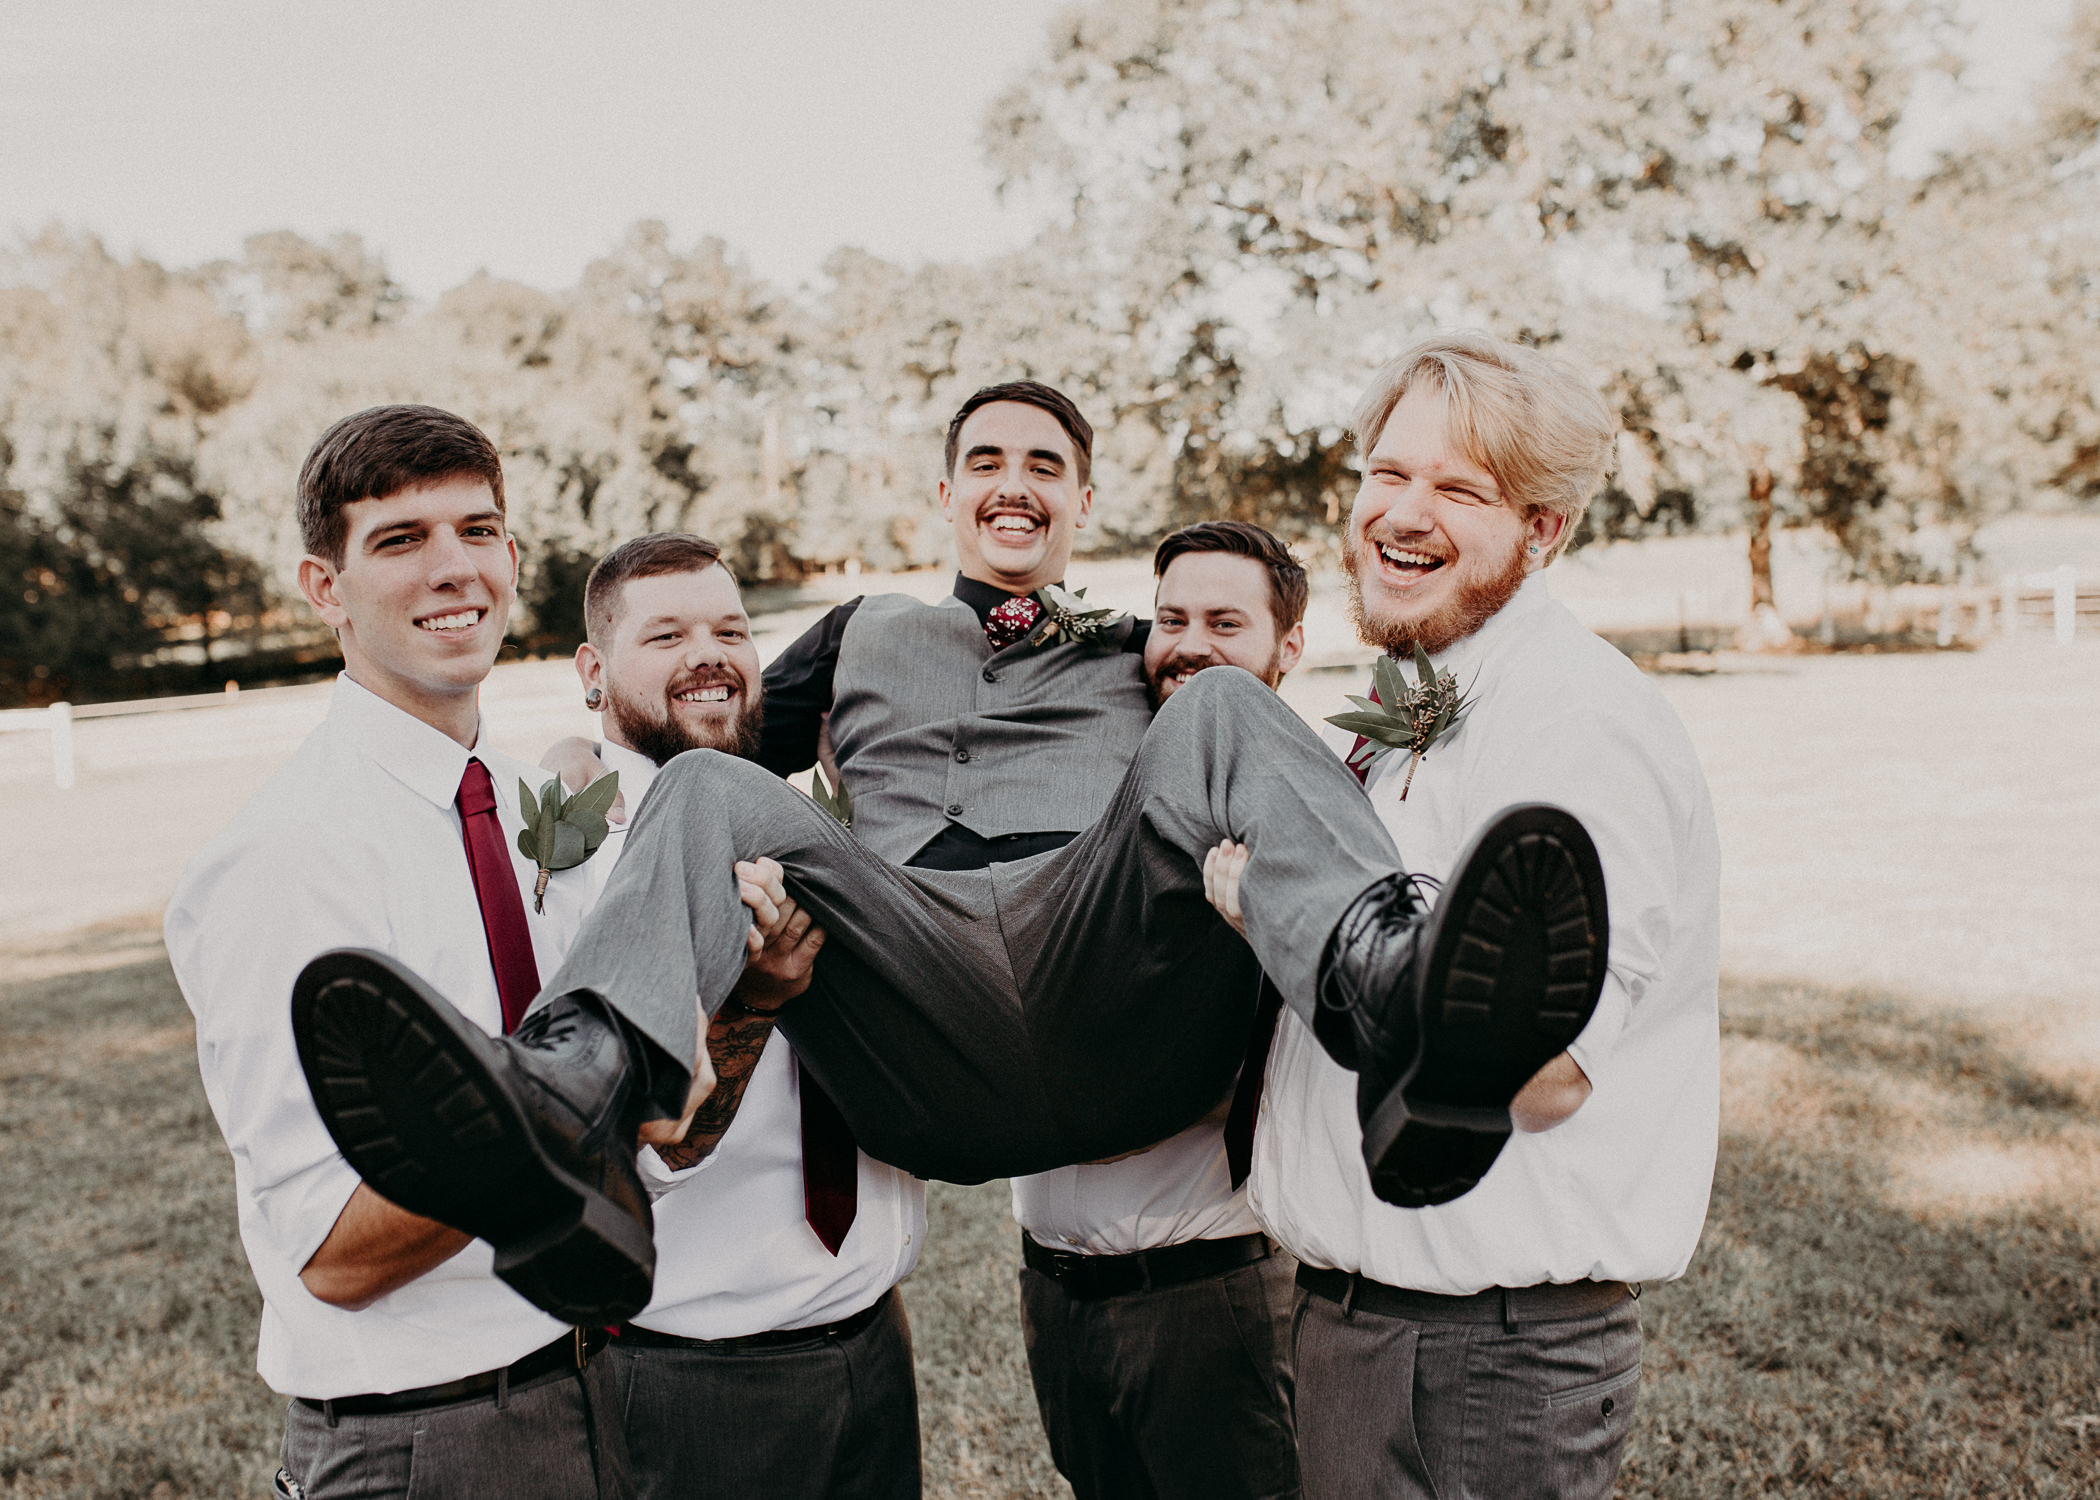 91 - Wedding groom and groomsman portraits - Atlanta wedding photographer.JPG